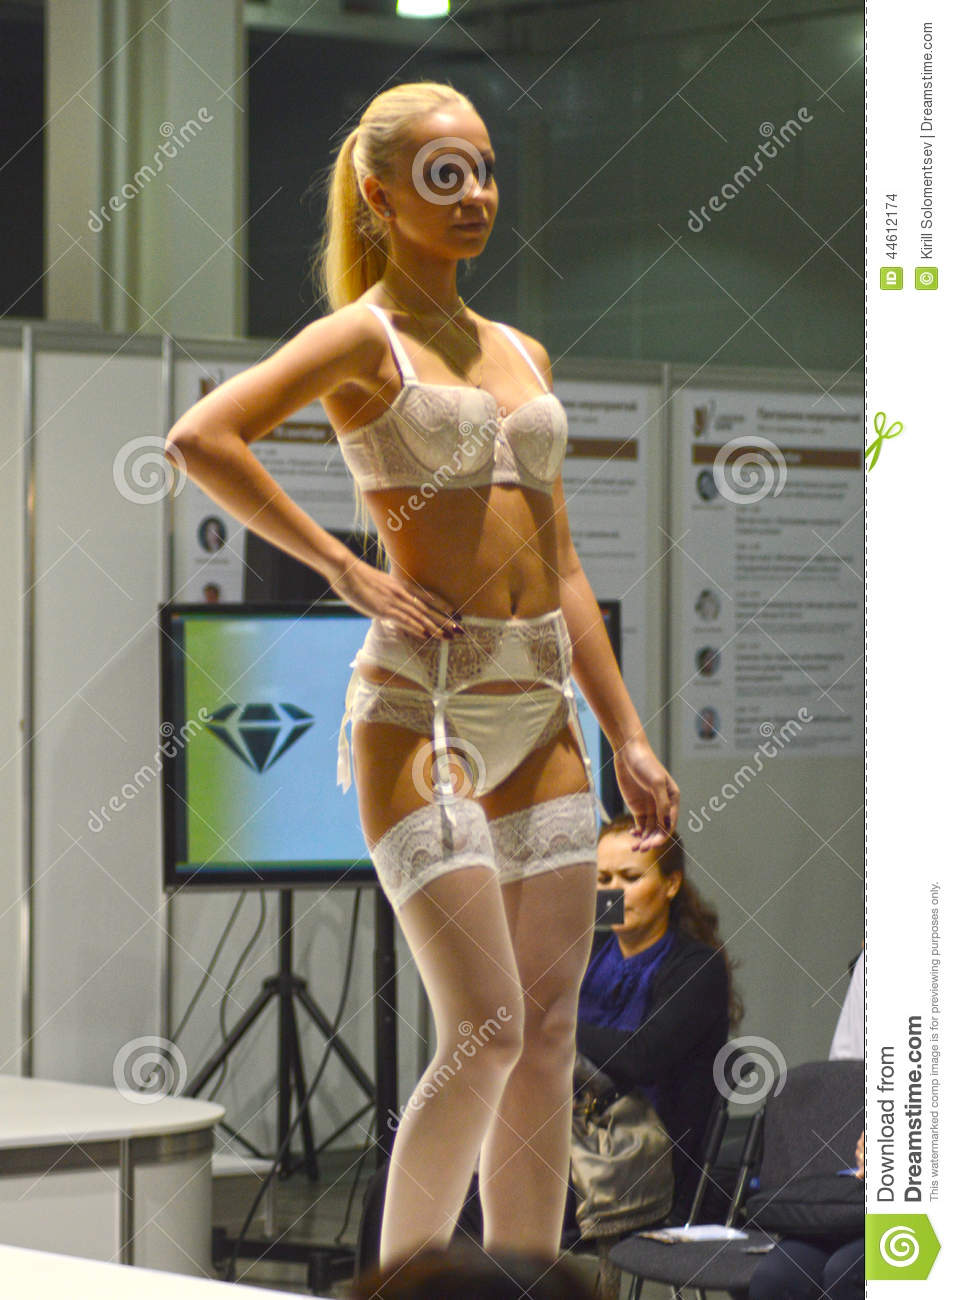 a58a57afd Moscow Lingrie Expo Fashion Show Autumn White Lingrie And Stockings ...